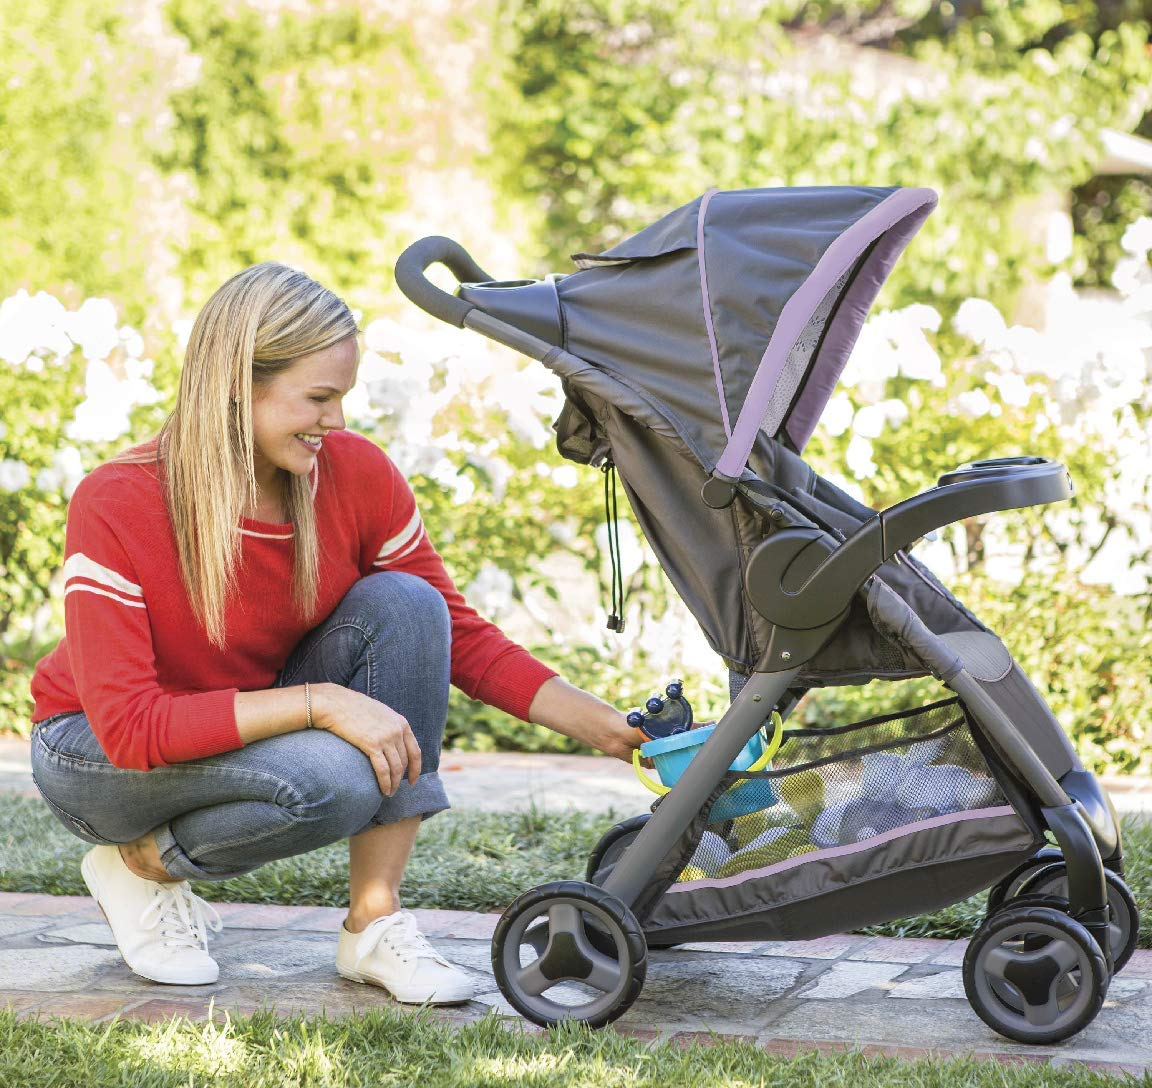 Graco Fastaction Fold Click Connect Travel System Stroller, Janey by Graco (Image #3)